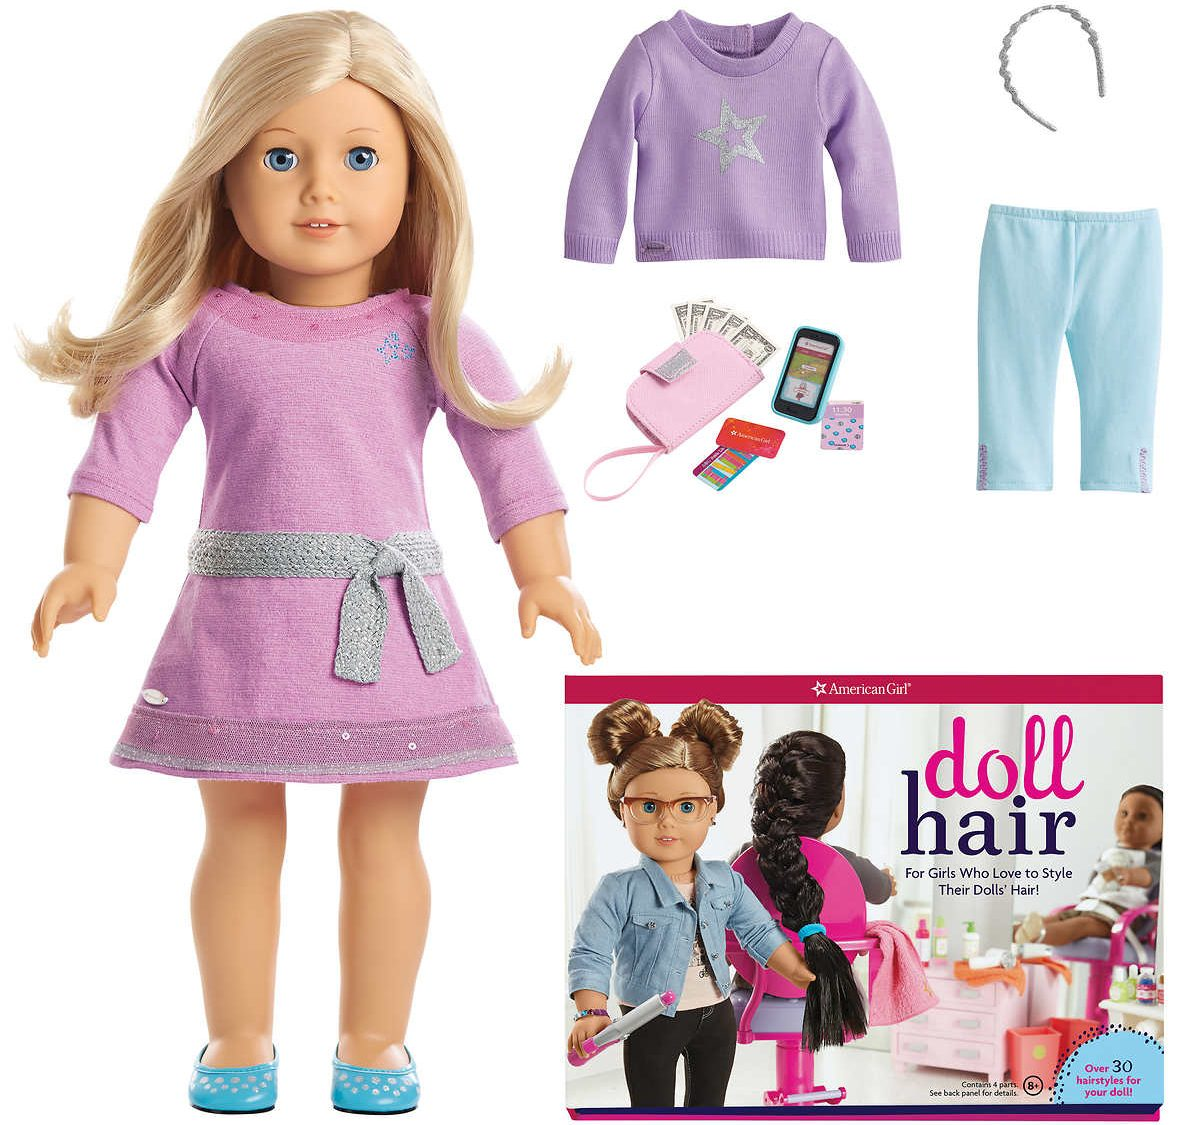 stock images of American Girl Doll with Hair Styling Set contents